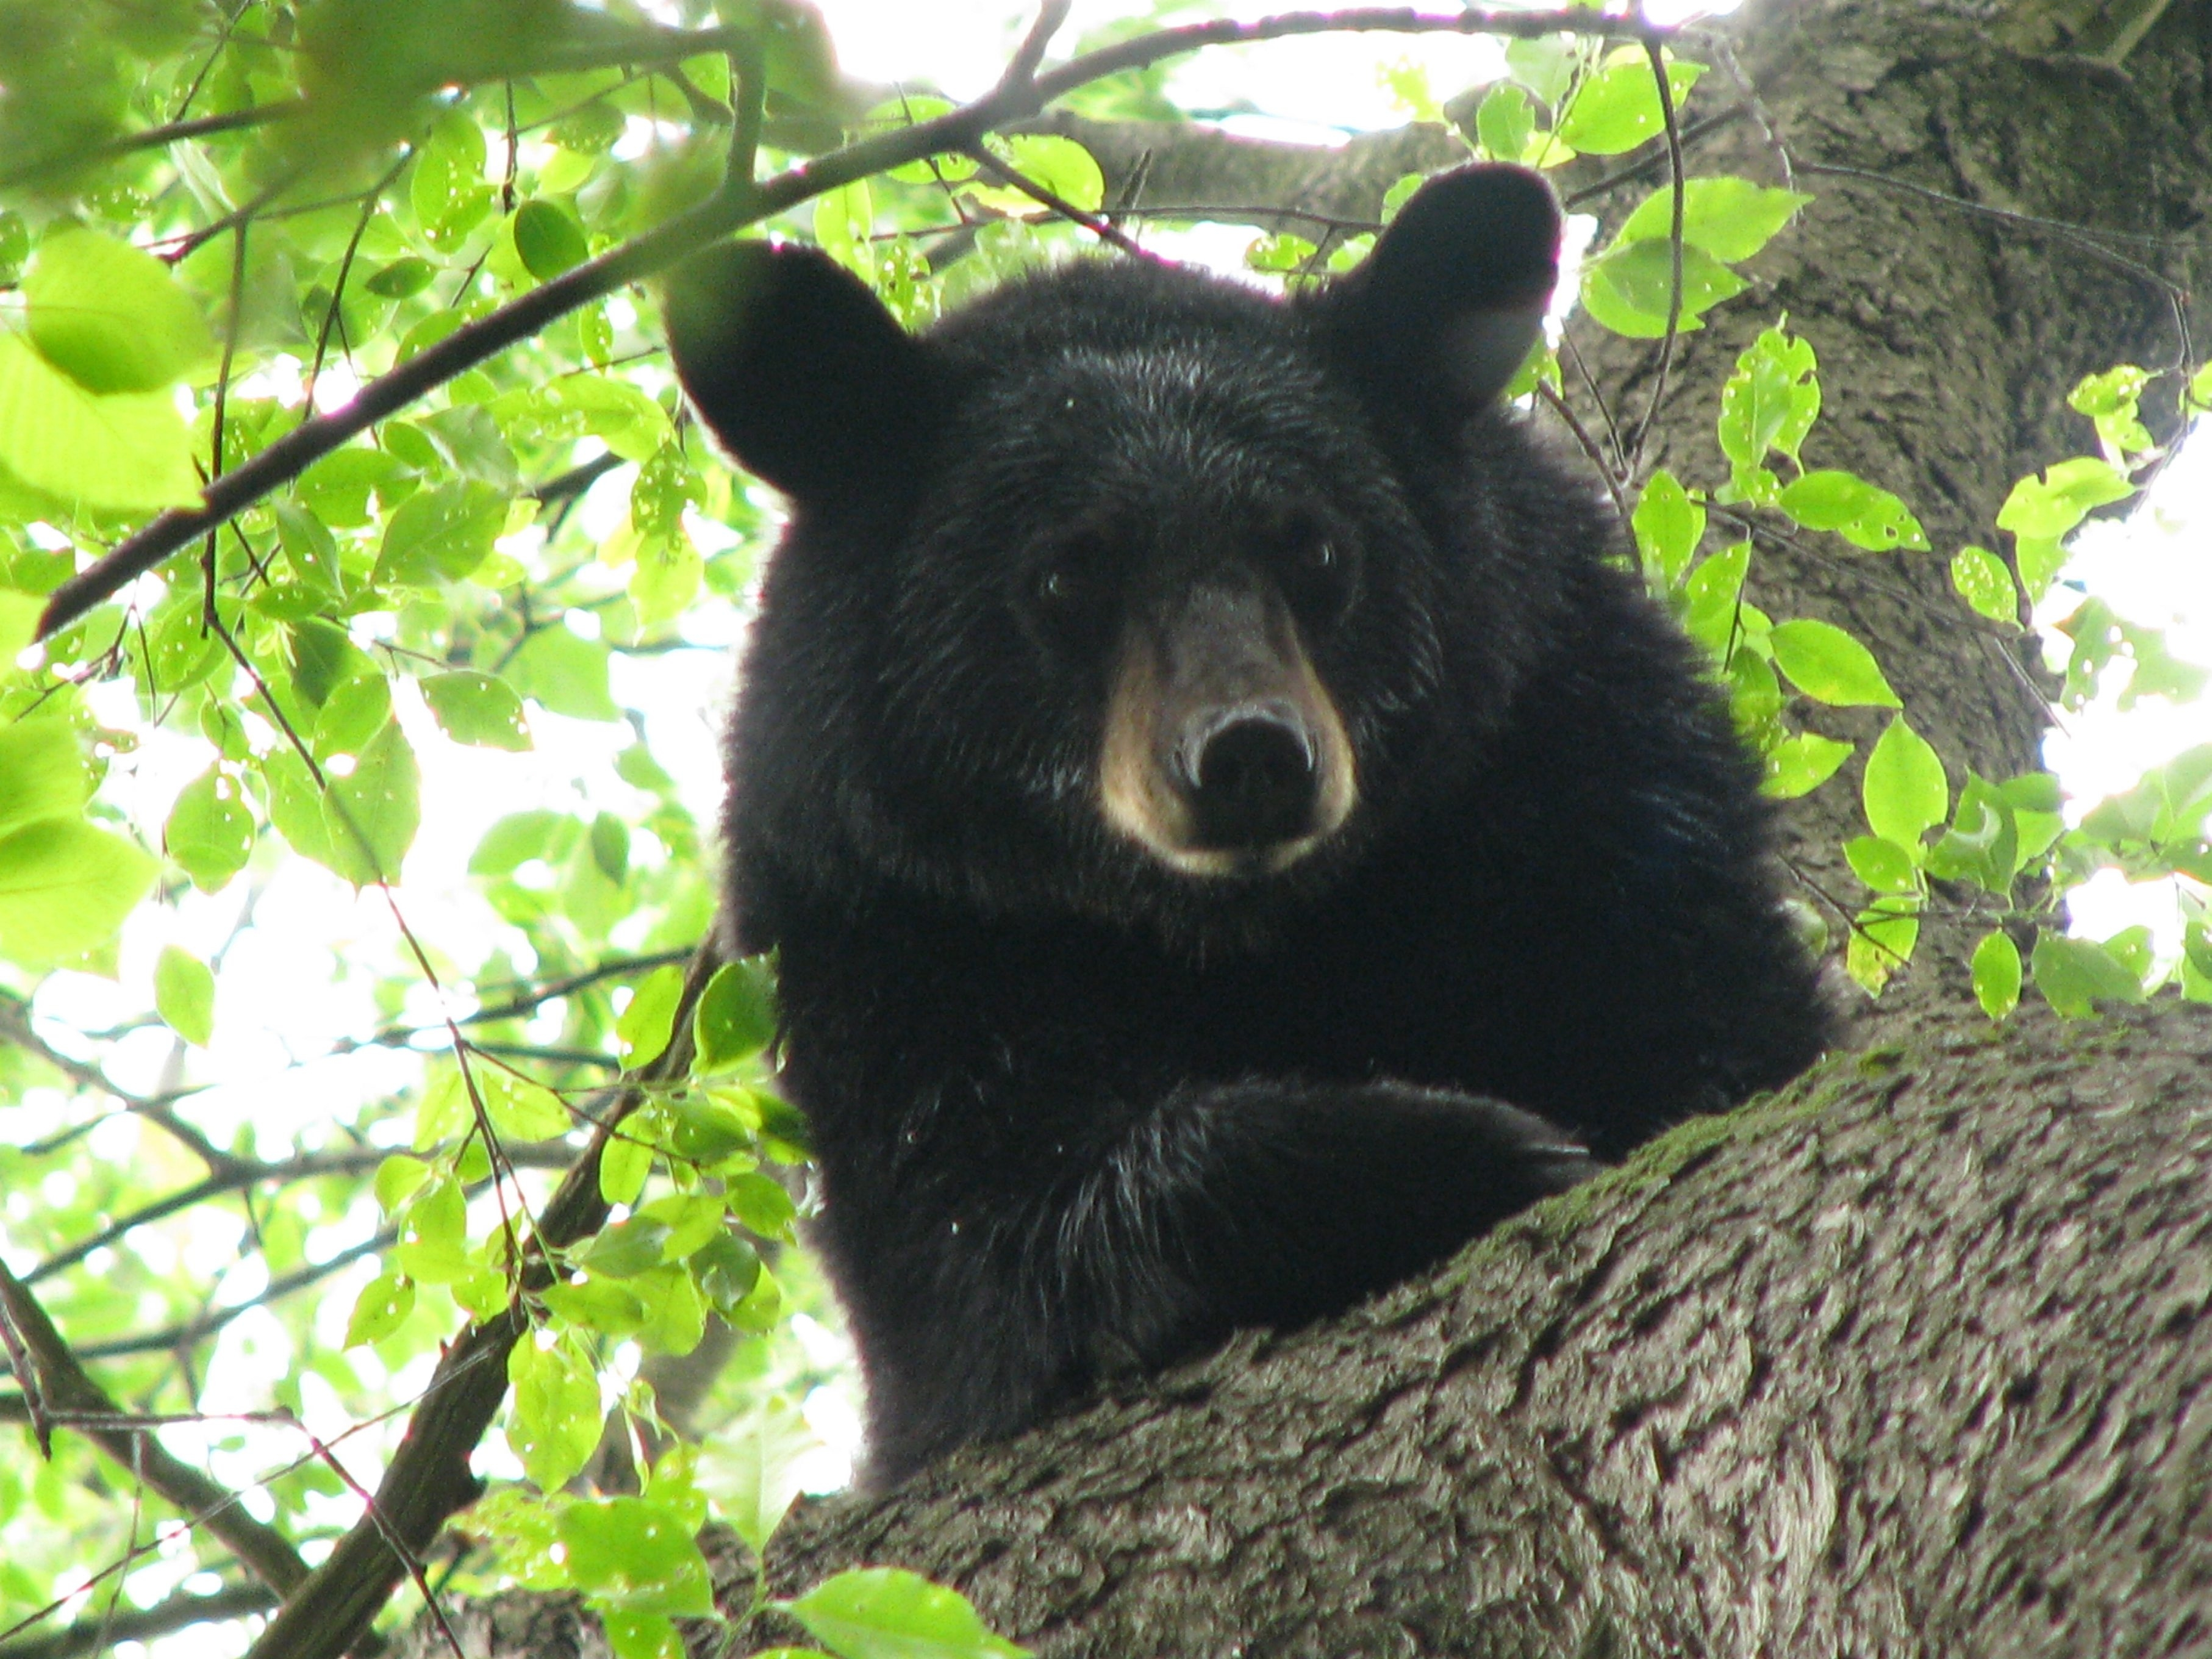 The rules have changed a bit when it comes to bear hunting, as the number of bears apparently has gone up.